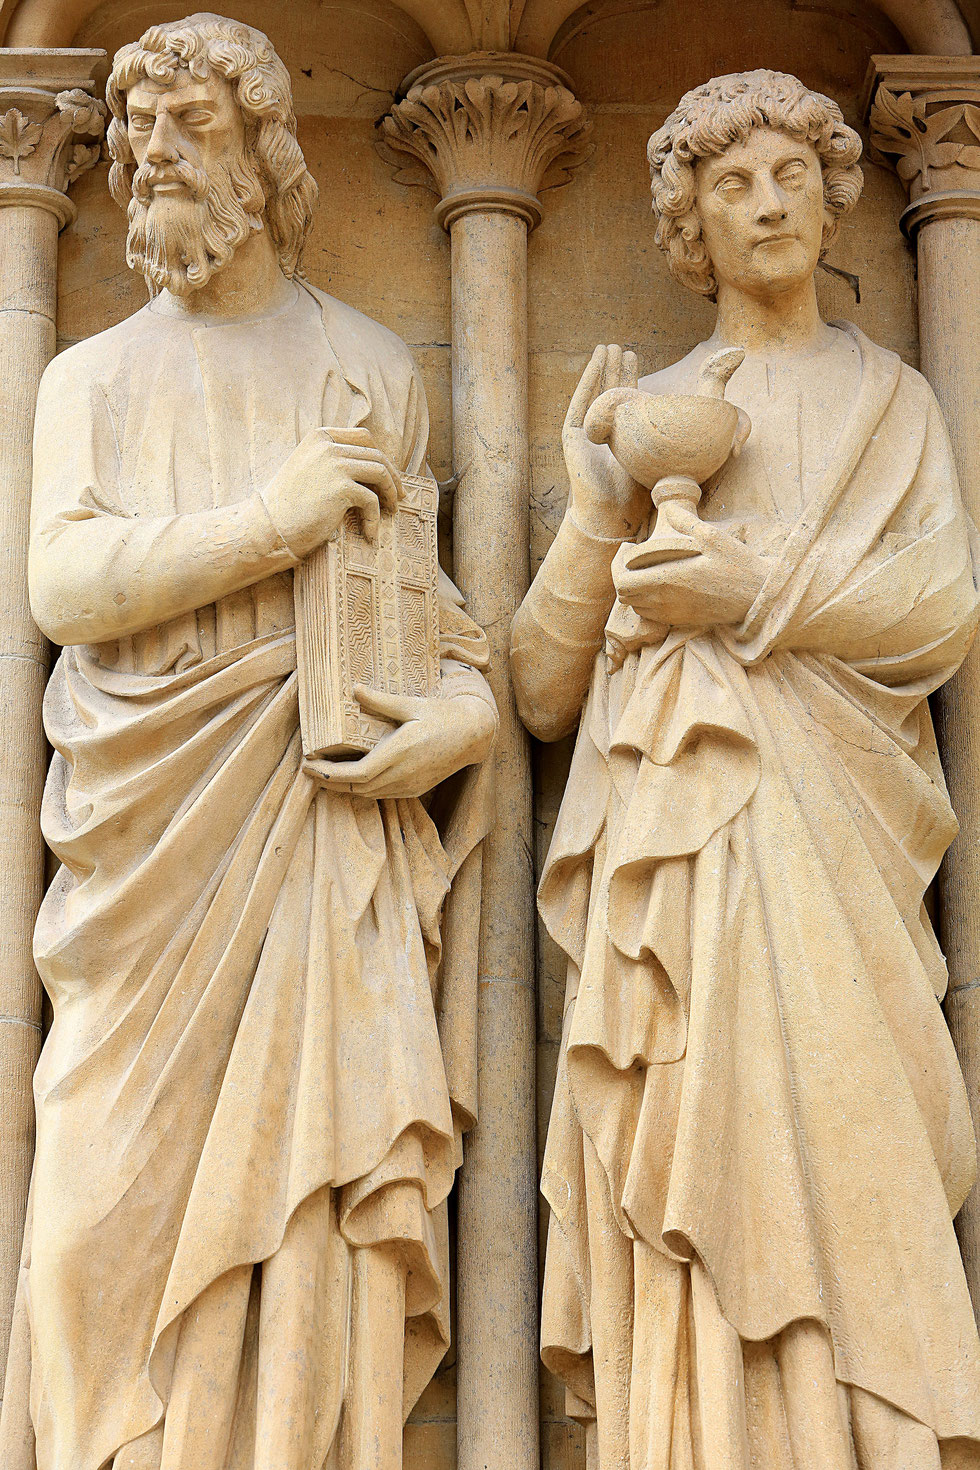 From left to right : Evangelists : St. Luke and St. John. Portal of the Virgin. St. Stephen of Metz Cathedral.